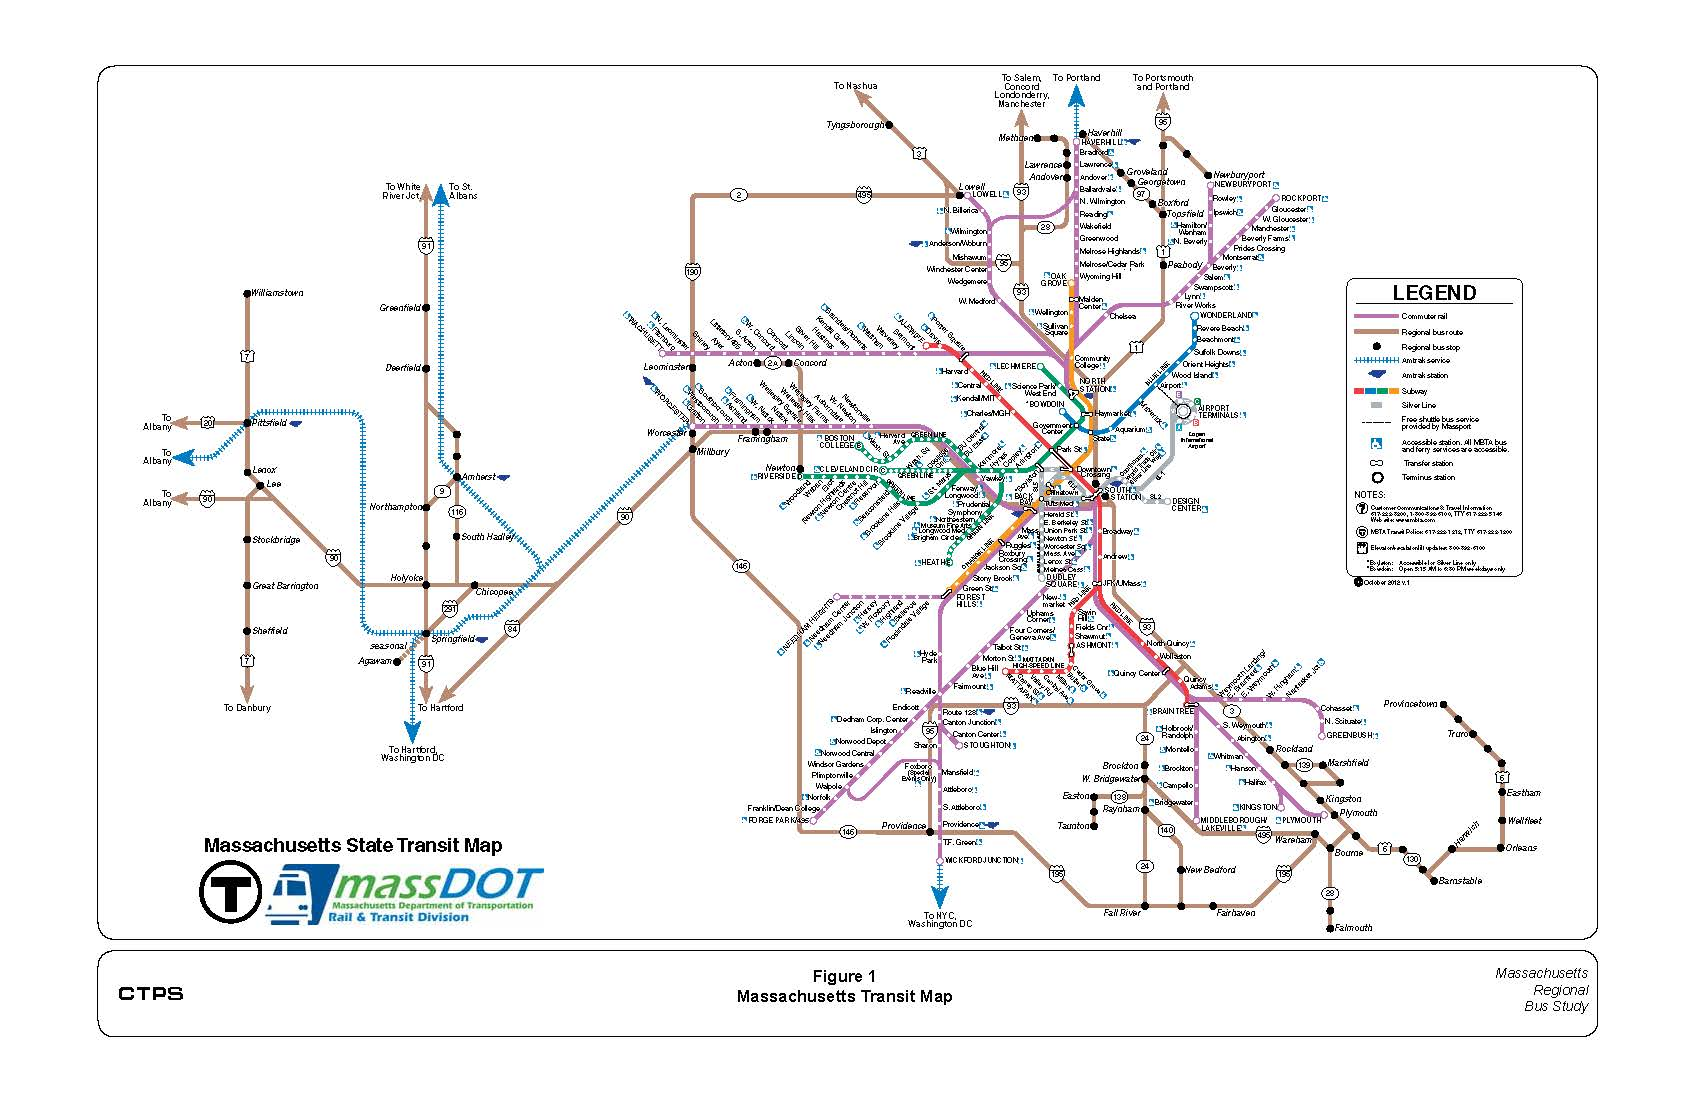 chapter 2 - the regional bus network: recent evolution and